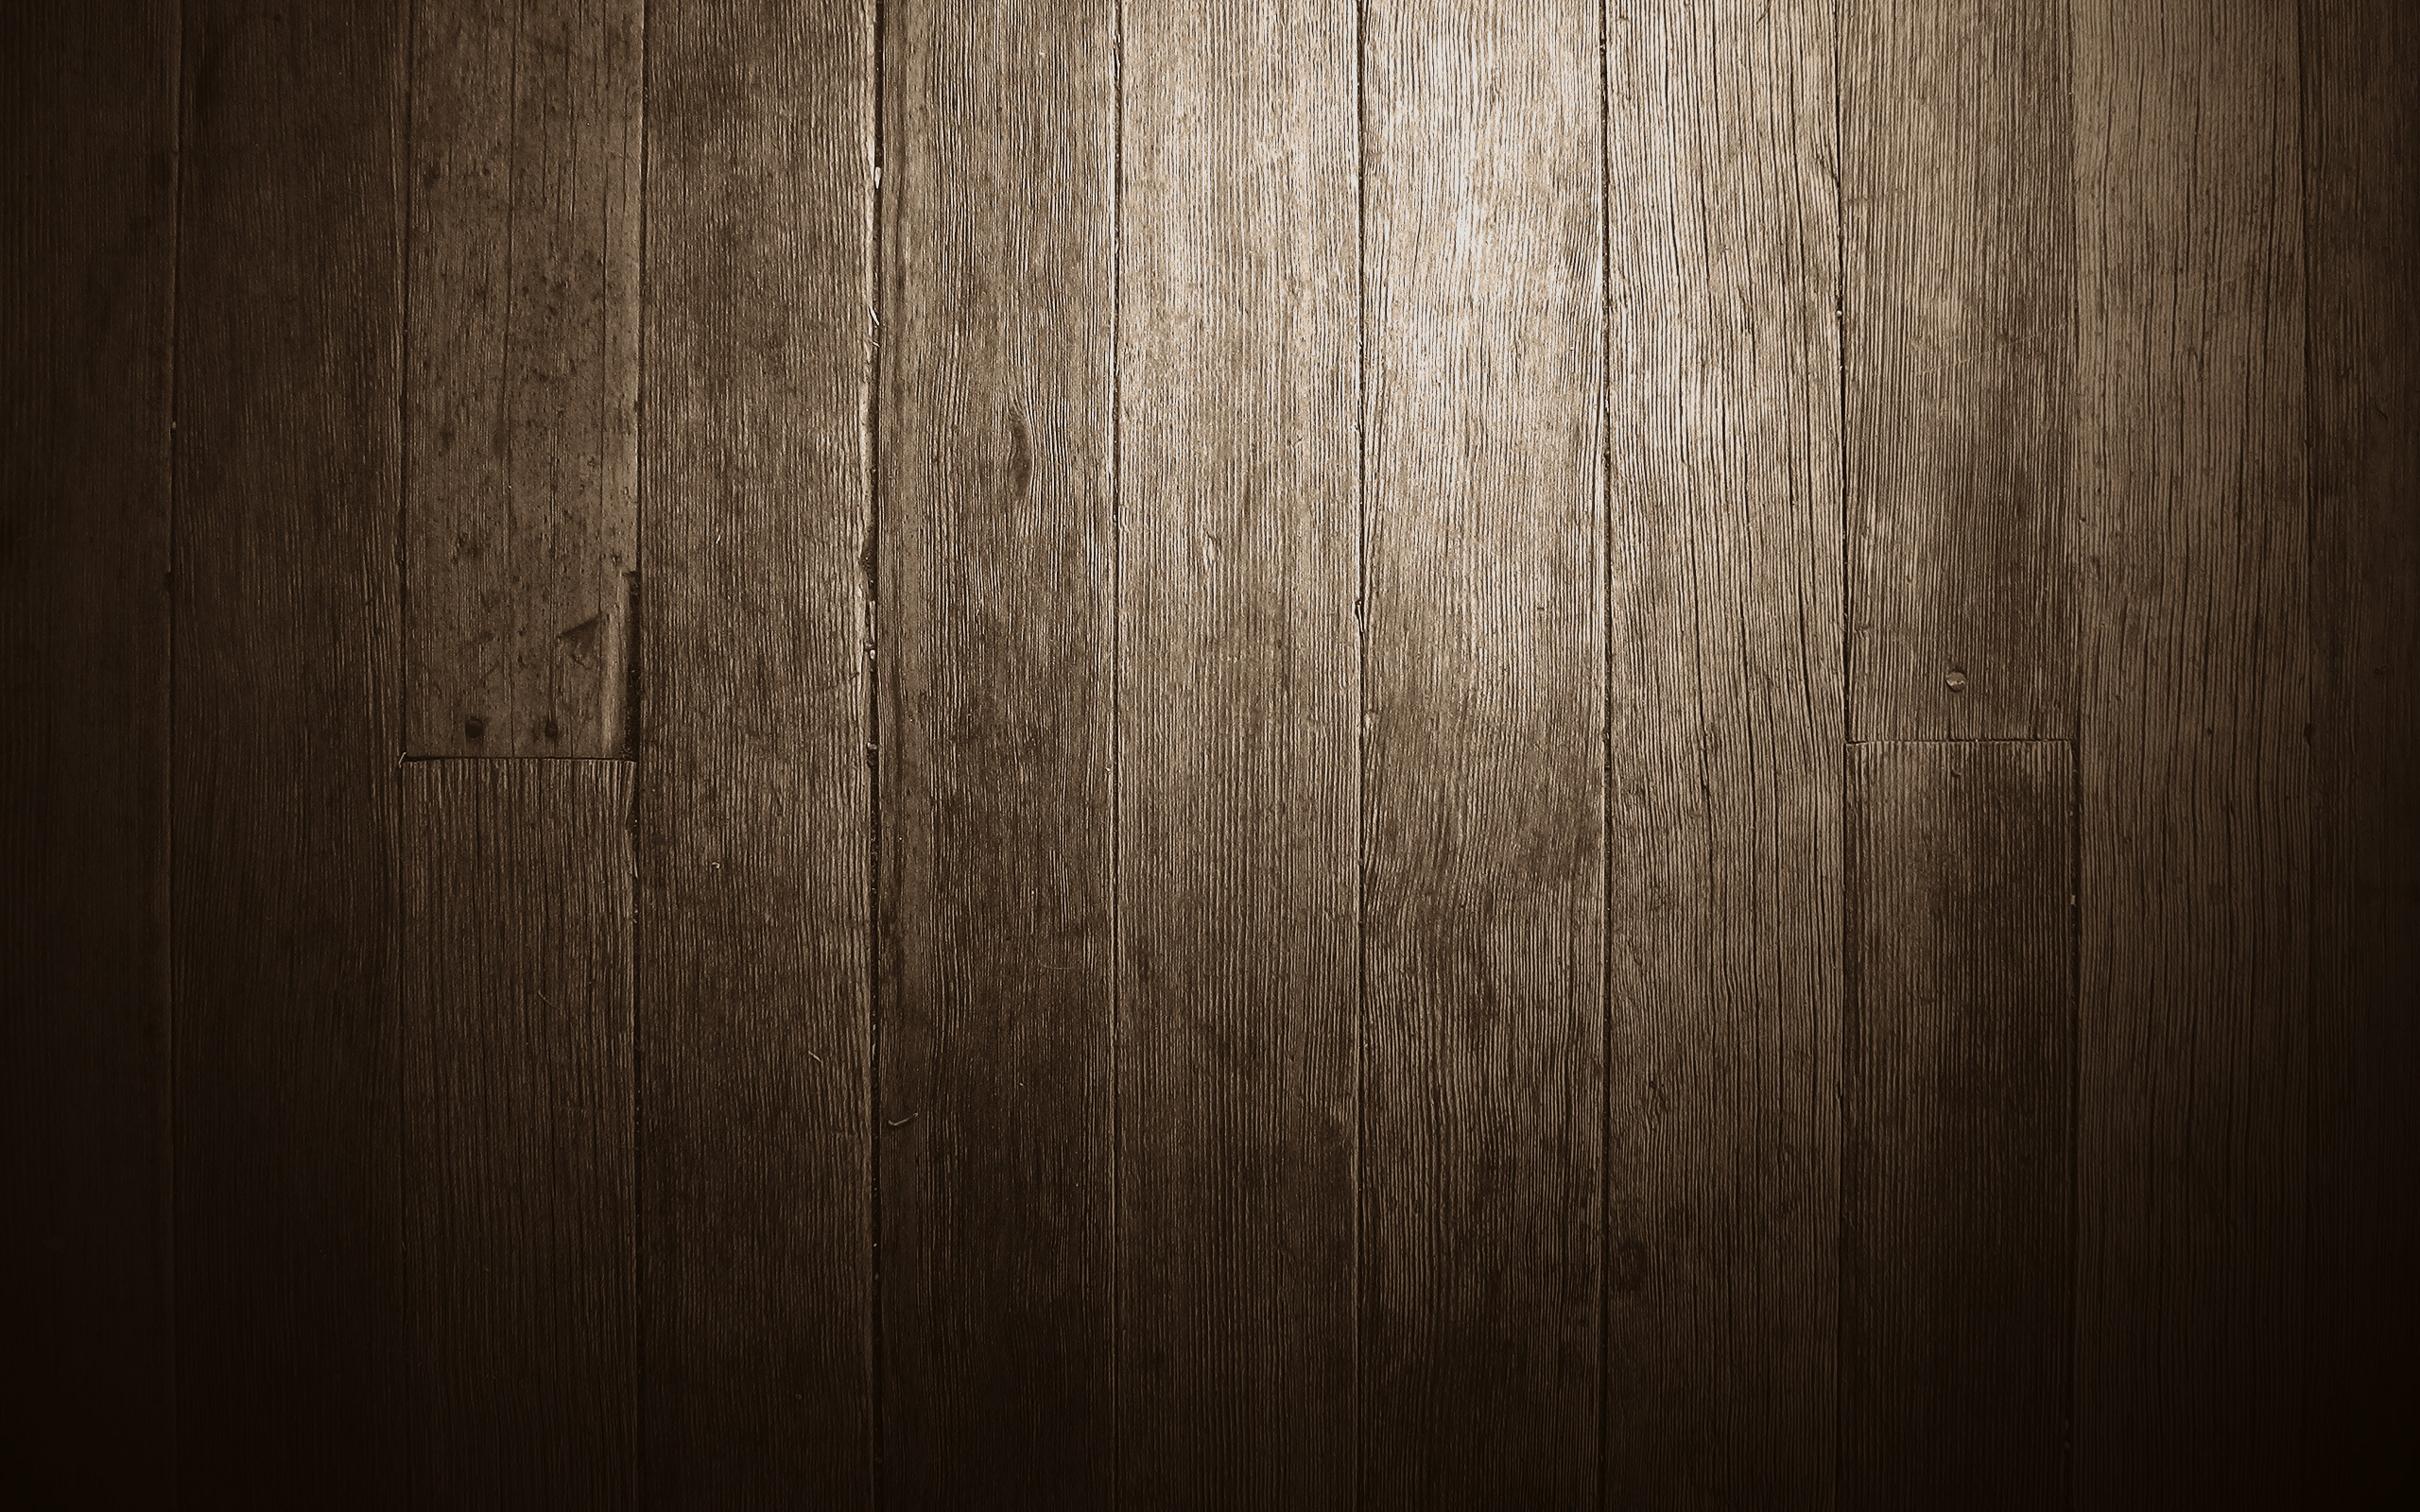 planking, wooden floor, texture, download photo, wood texture